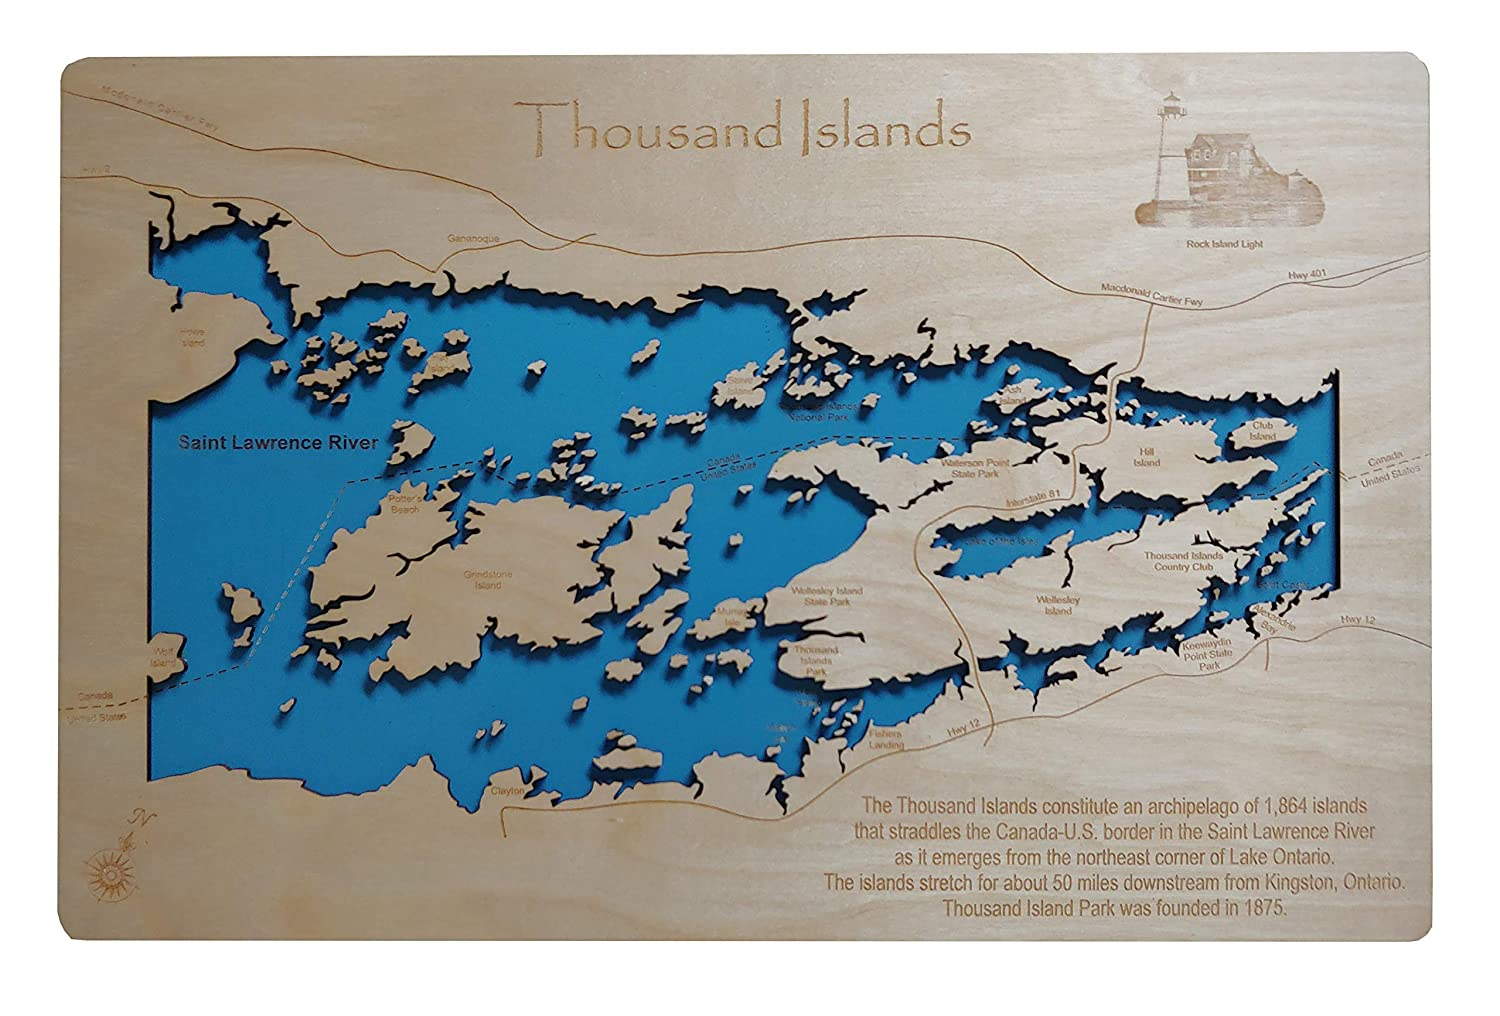 Thousand Island Map Canada Usa Amazon.com: Thousand Islands: Standout Wood Map Wall Hanging: Handmade